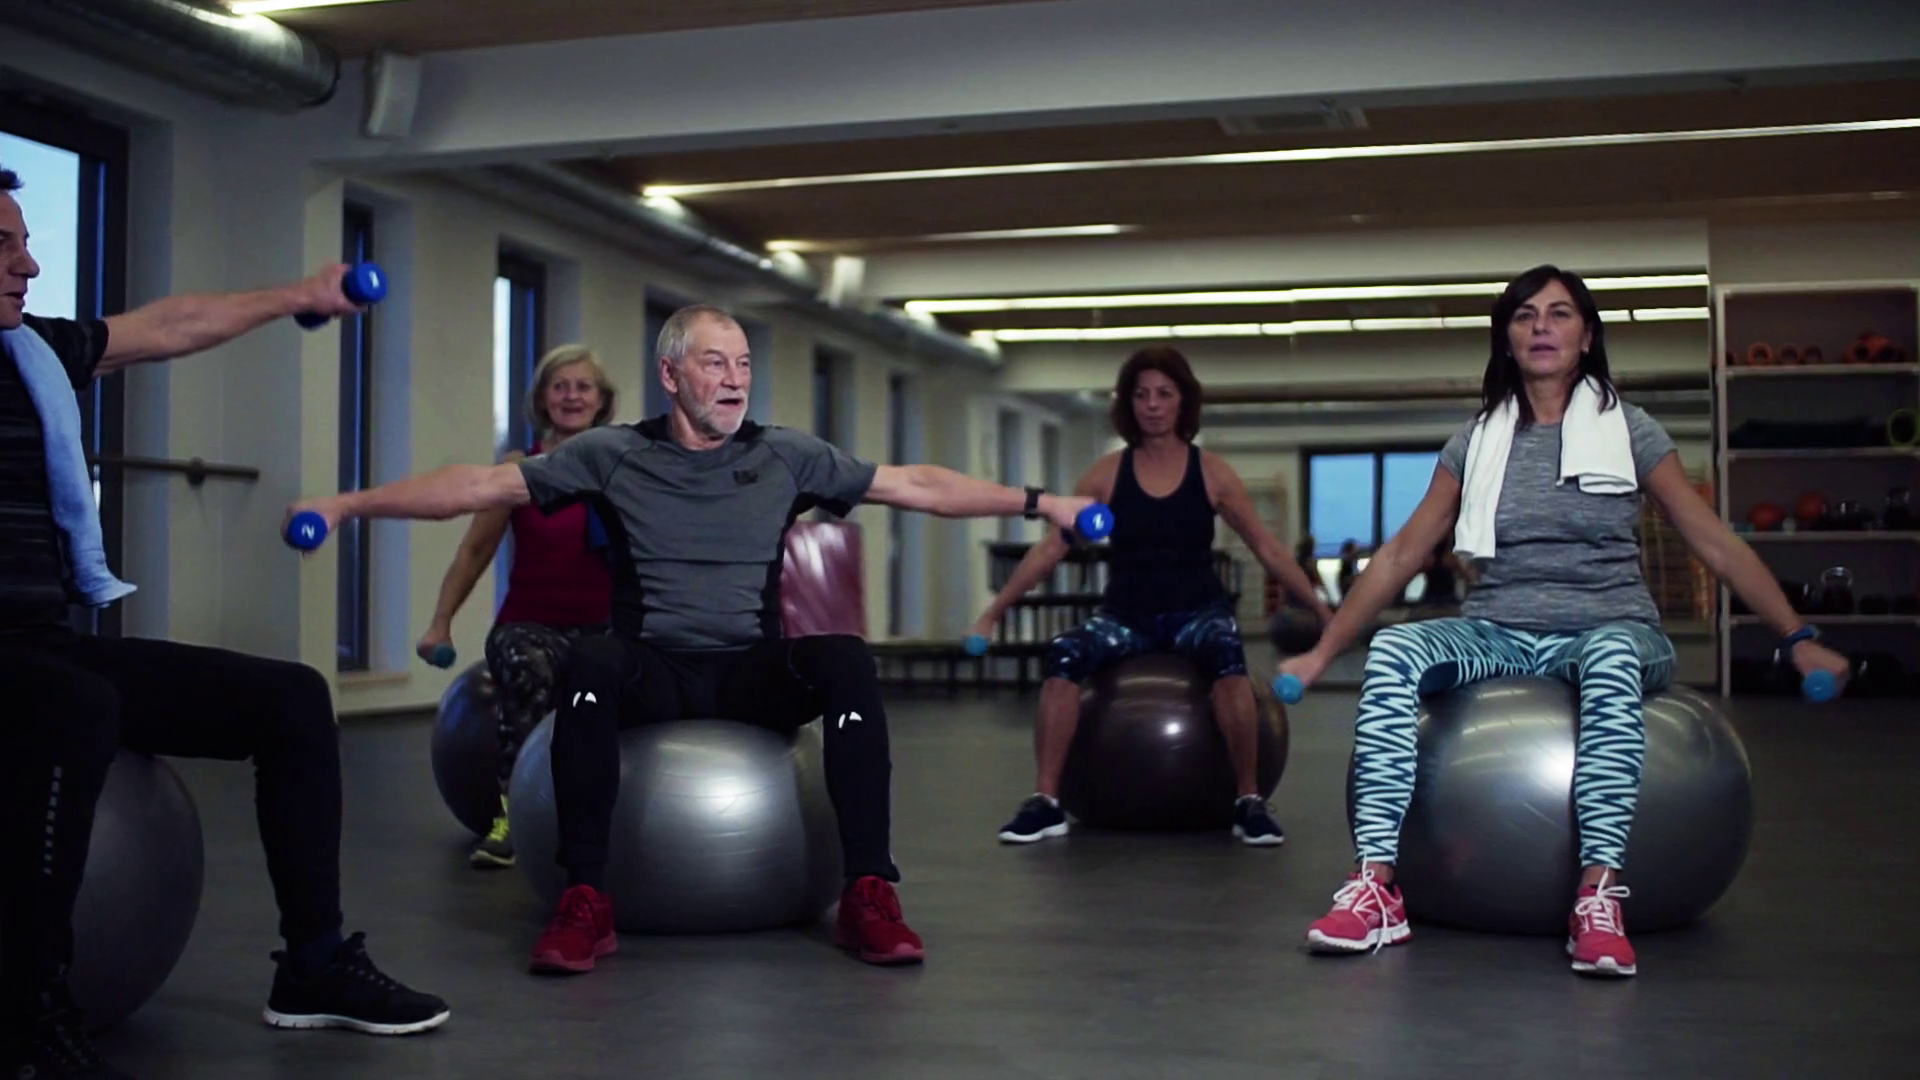 A Group Of Cheerful Seniors In Gym Doing Exercise With Dumbbells On Fit Balls Slow Motion Stock Video Footage Storyblocks